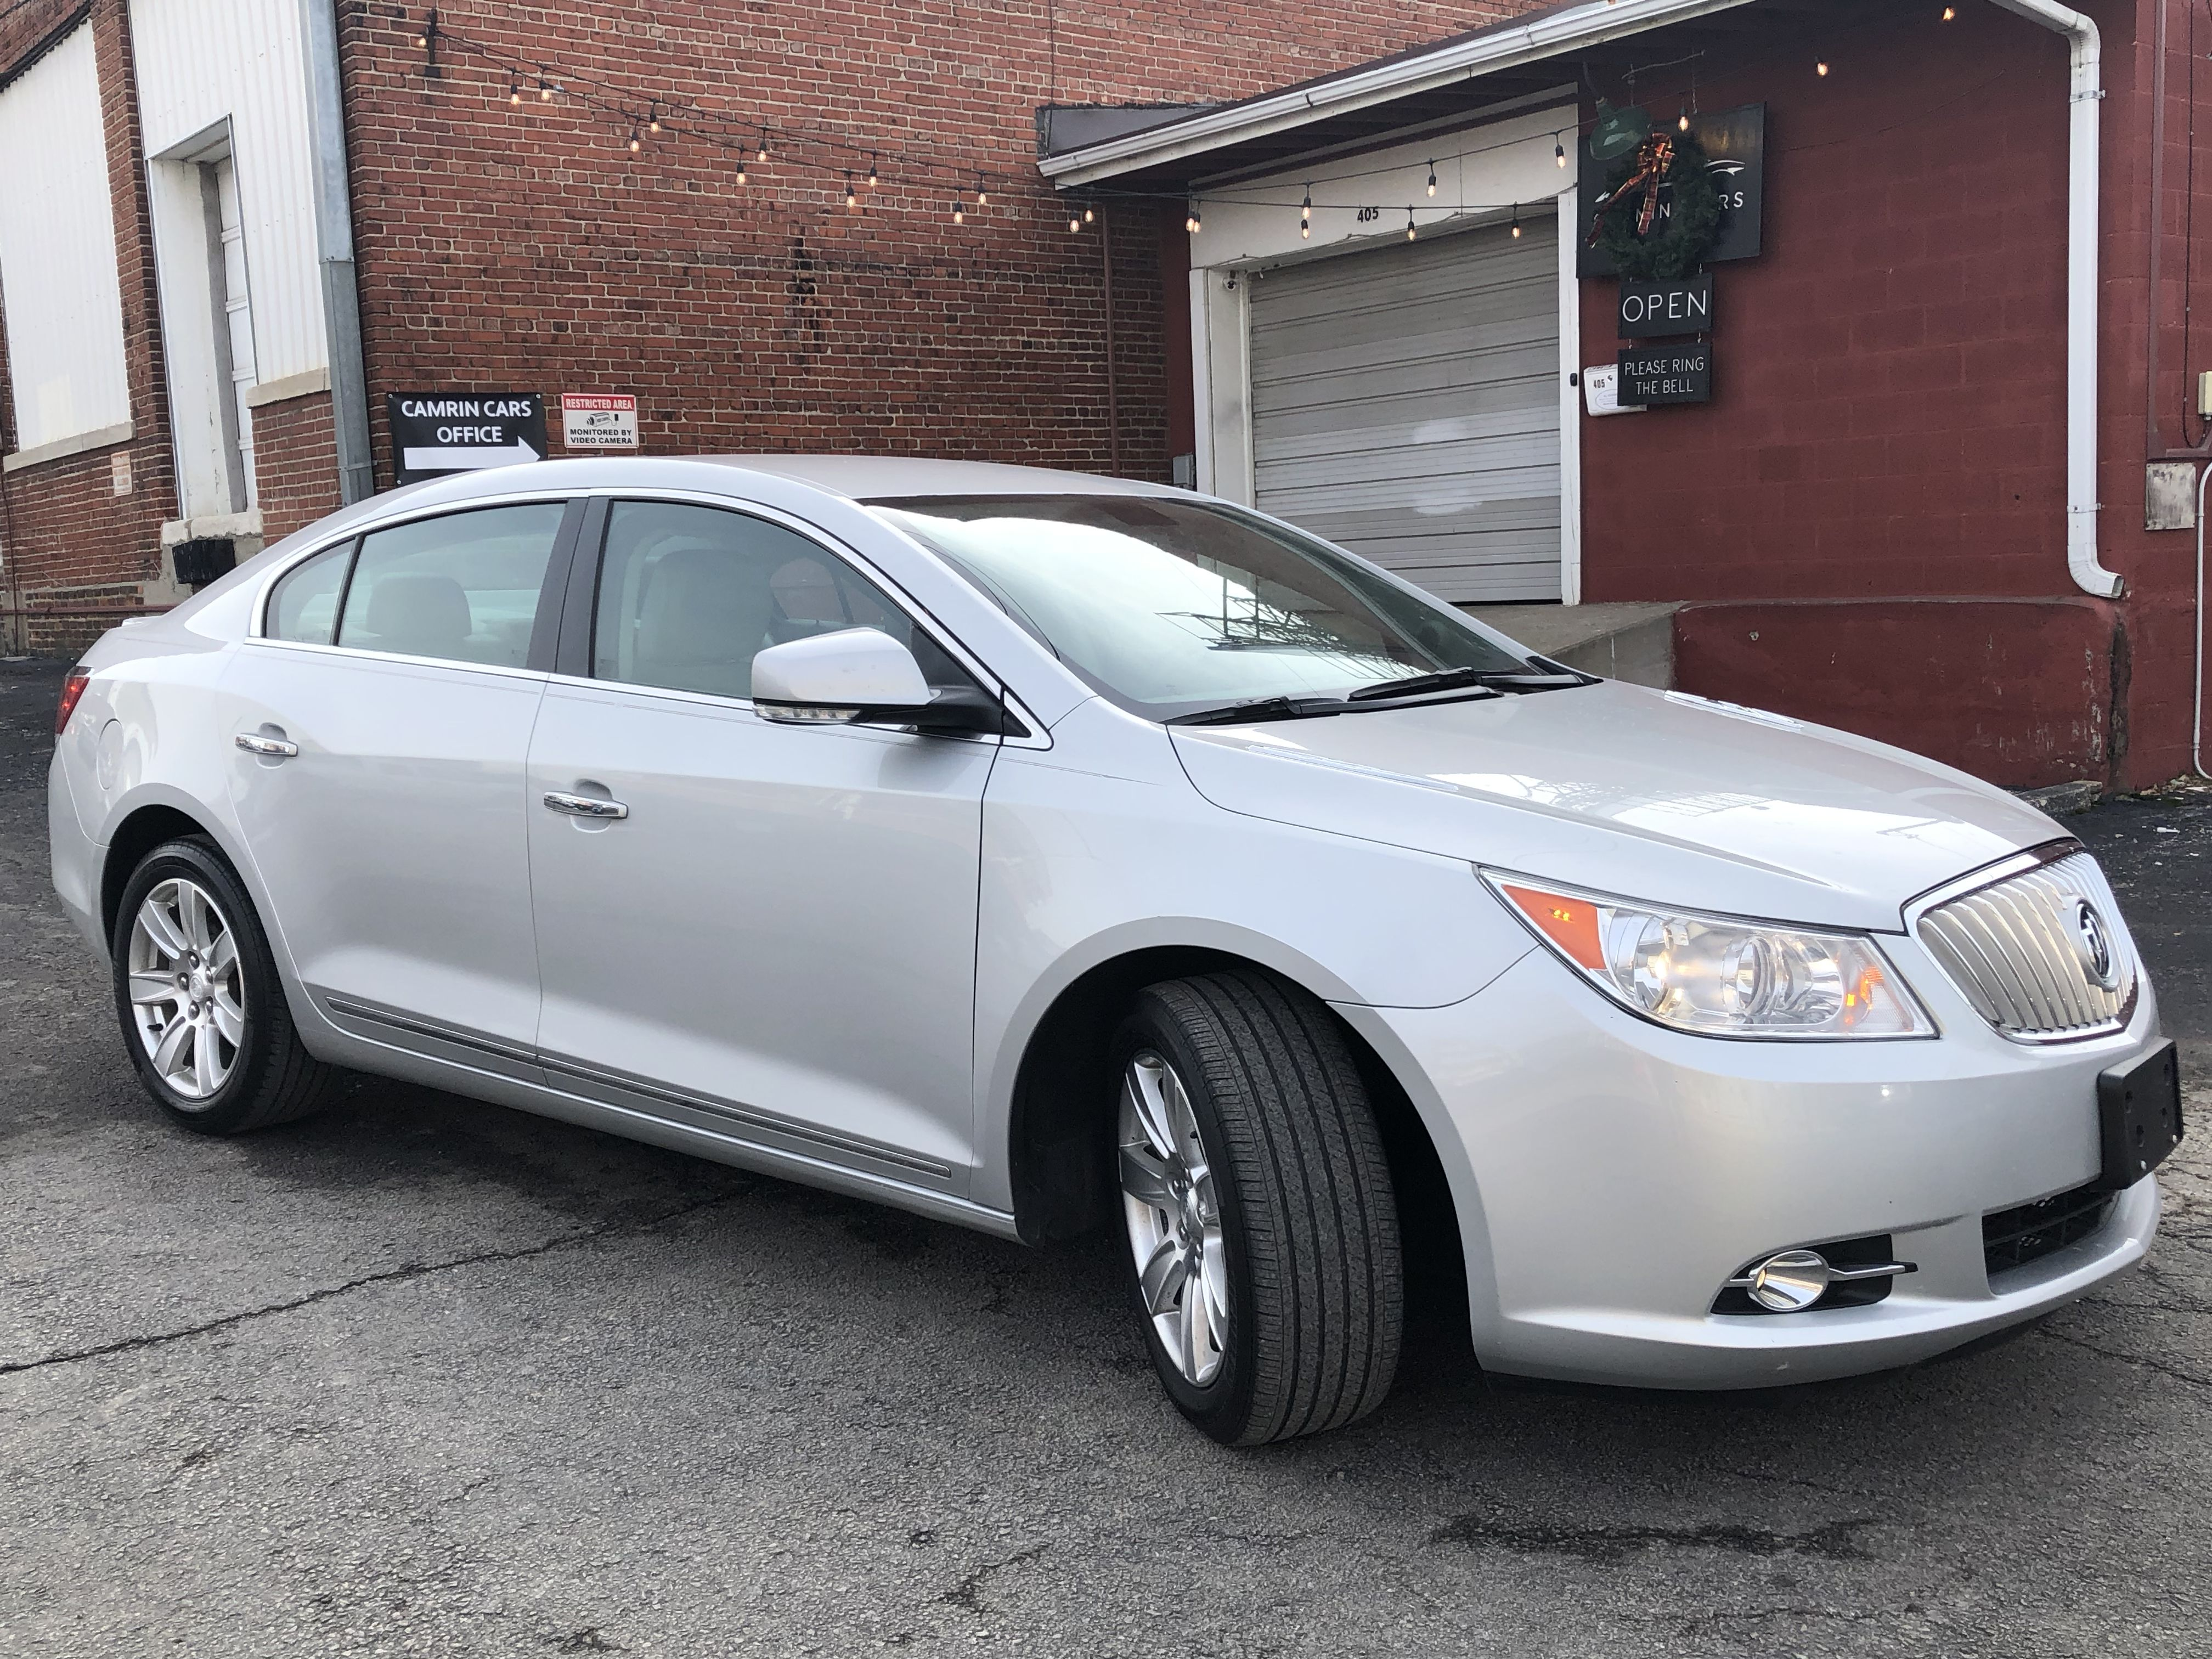 Picture Of Buick Lacrosse Car Dealership Buick Lacrosse Used Cars